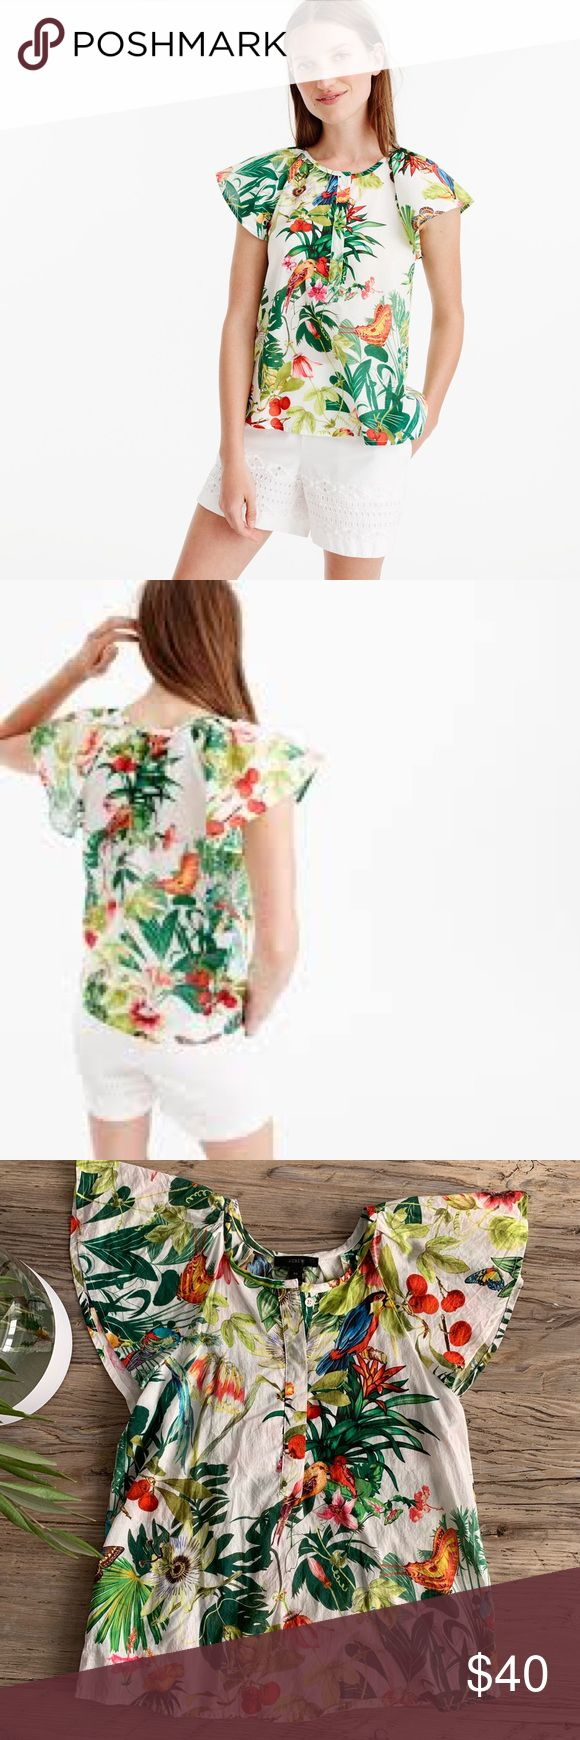 I just added this listing on Poshmark: J.Crew Woman's tropical ruffle sleeve top. #shopmycloset #poshmark #fashion #shopping #style #forsale #J. Crew #Tops